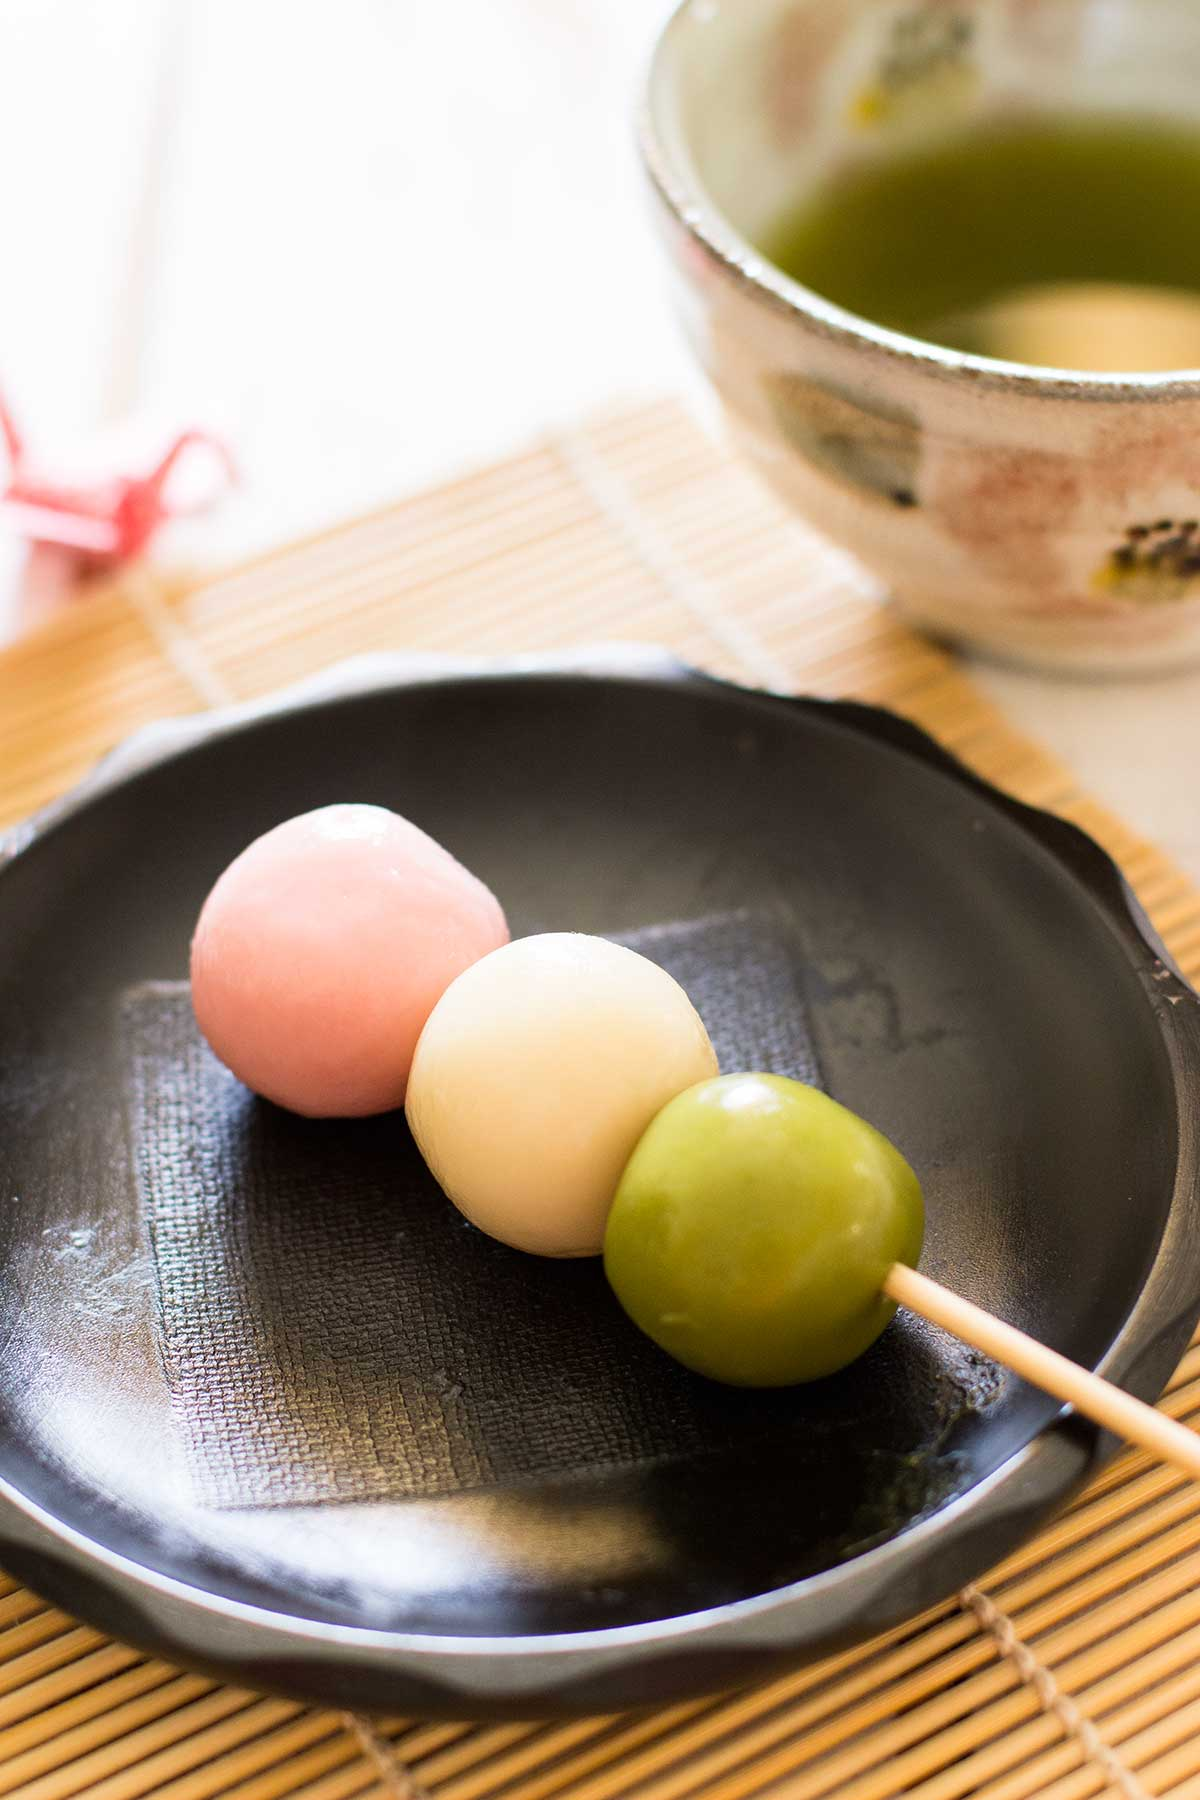 usually hishi mochi a type of rice cake mochi made into a diamond shape with three different coloured tiers of pink green and white are displayed on